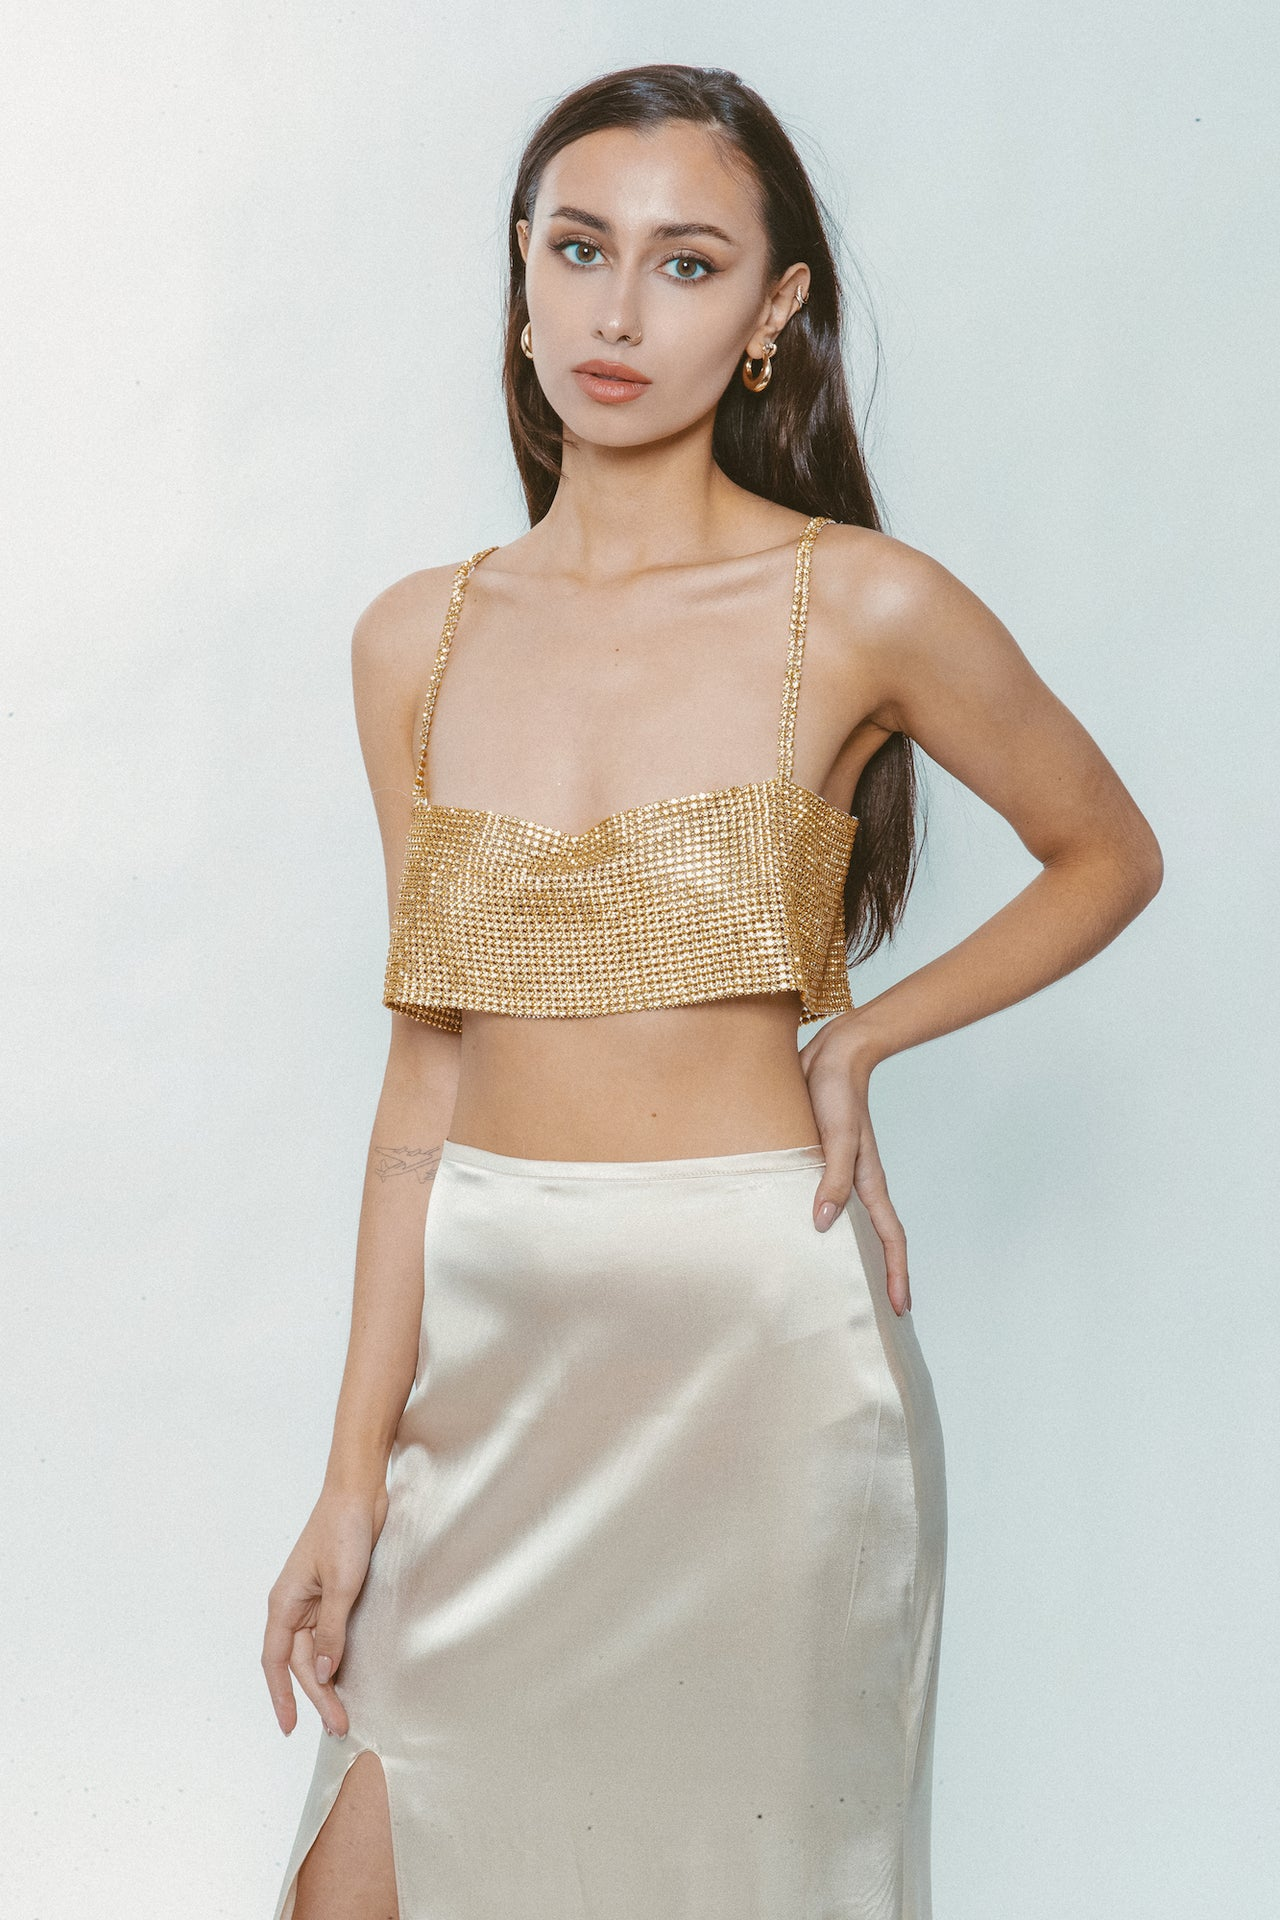 JEWELED TOP - Lurelly